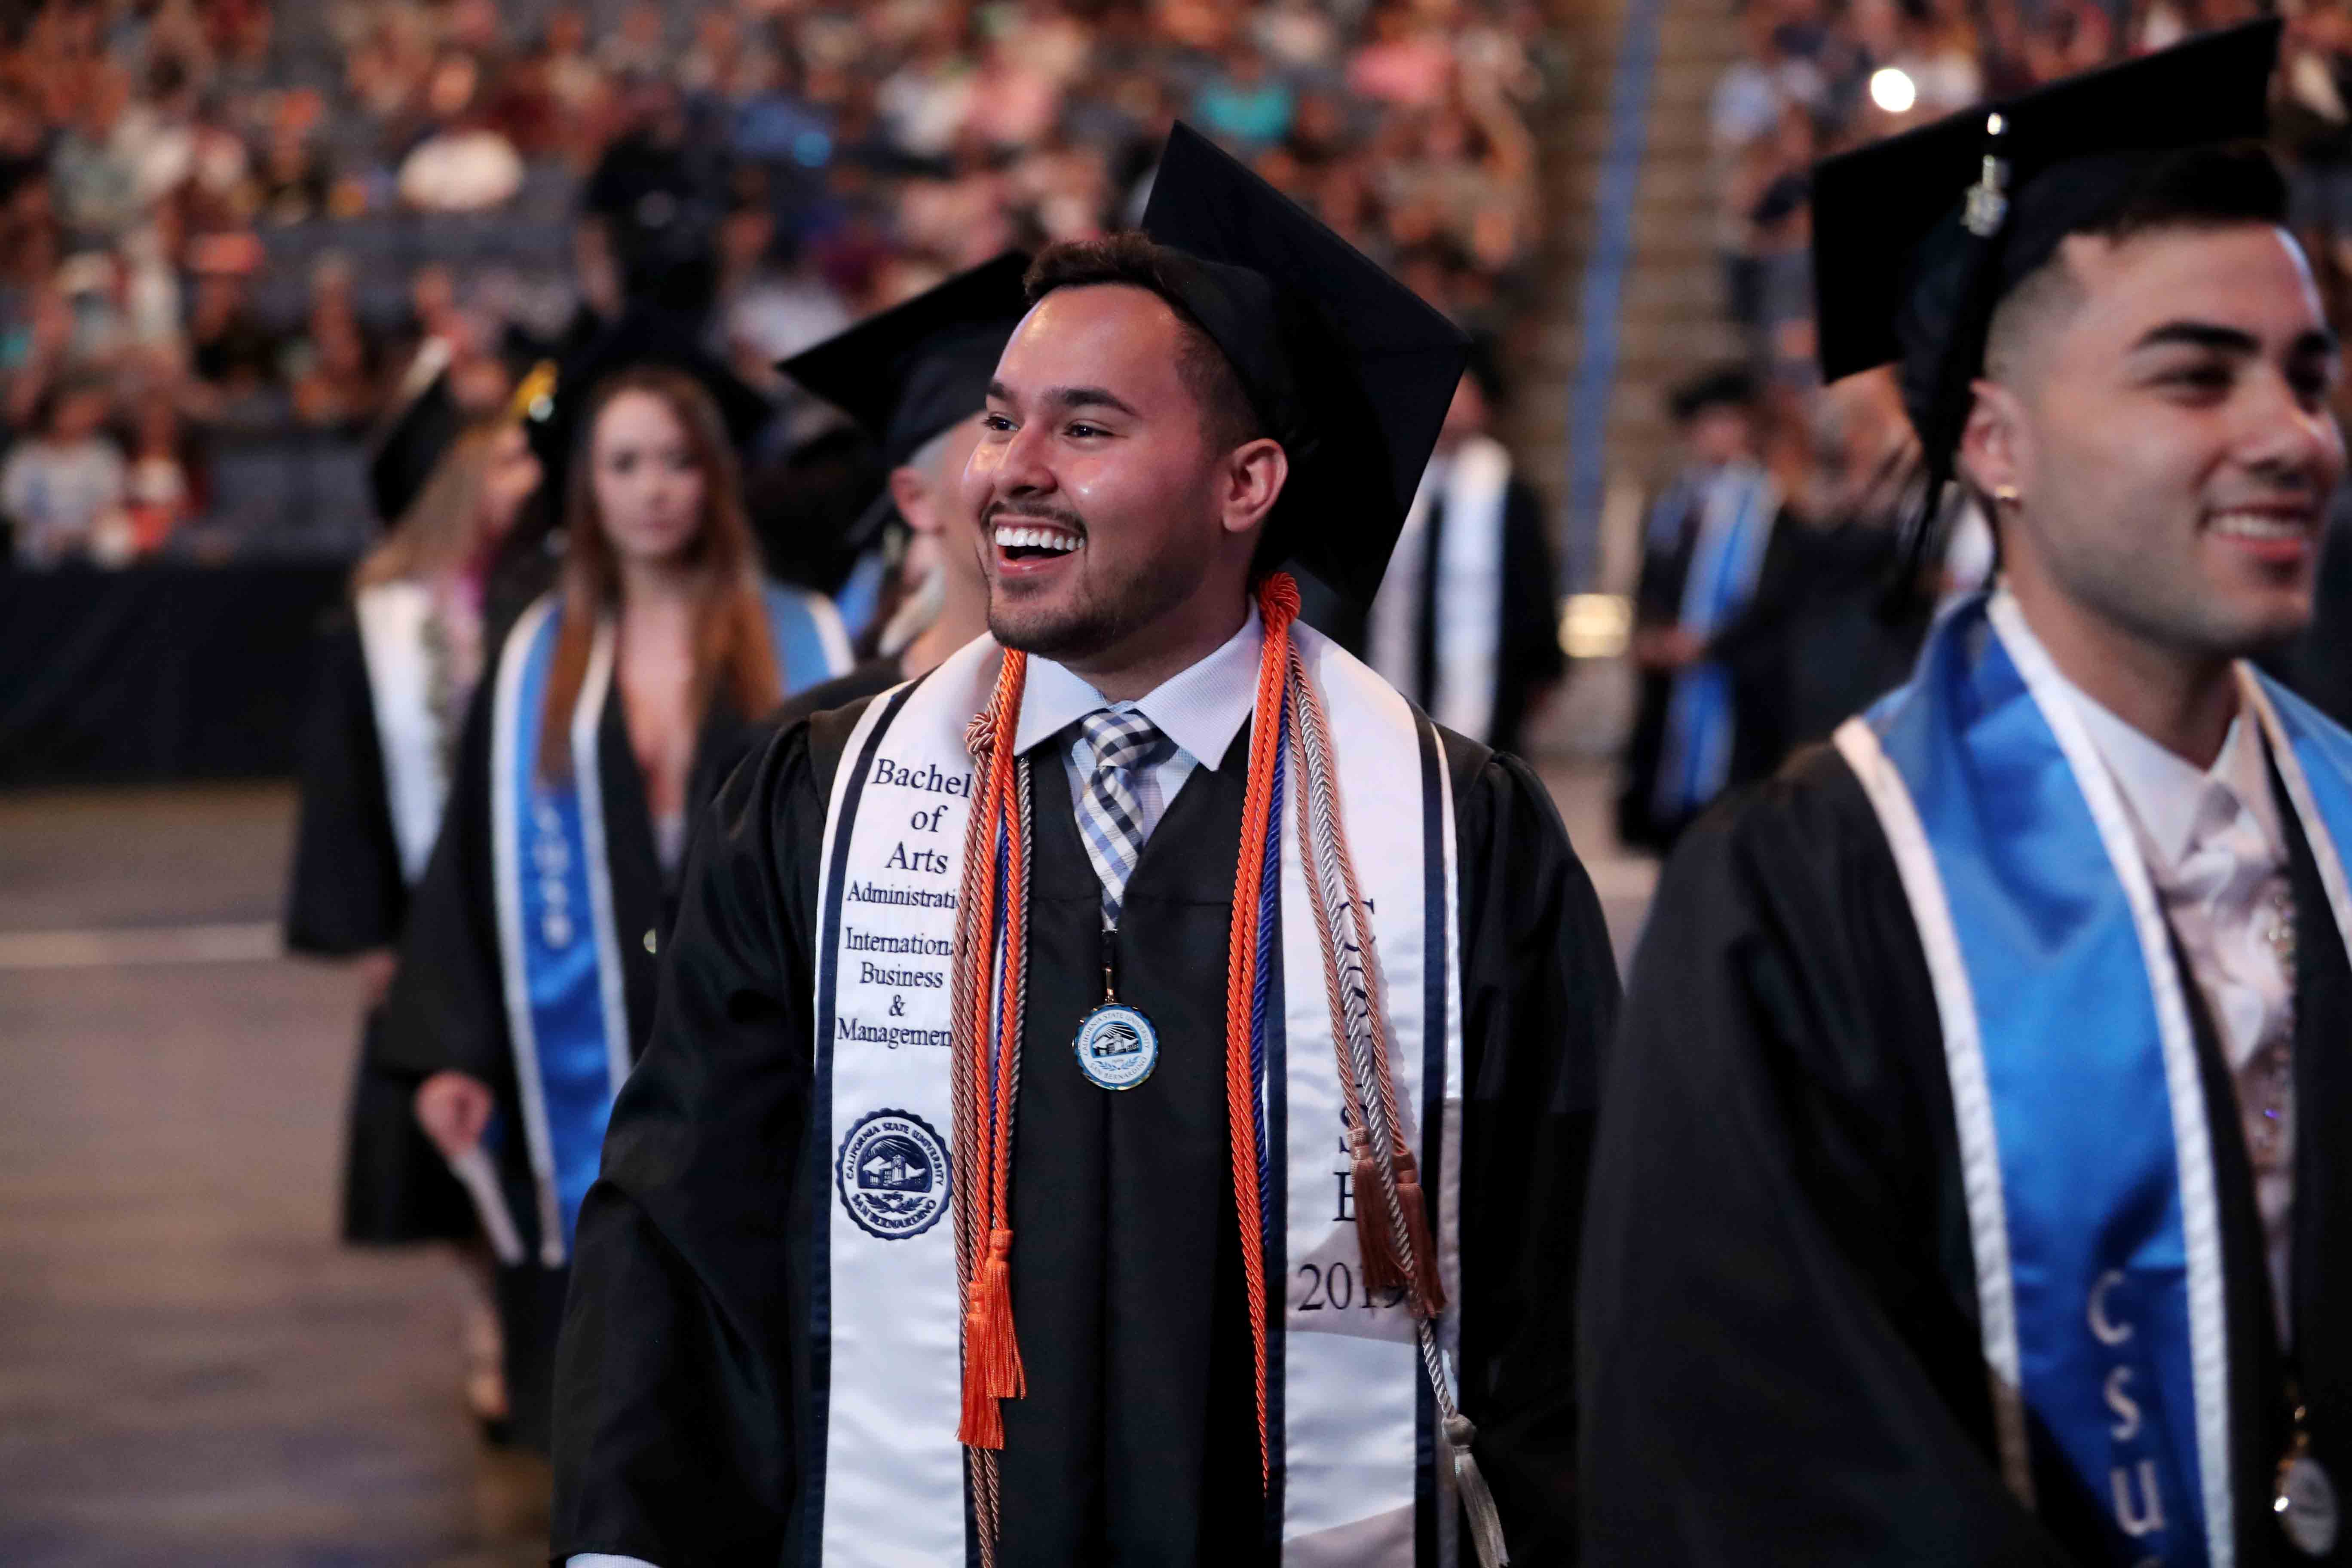 A student marches into Toyota Arena for one of four commencement ceremonies.